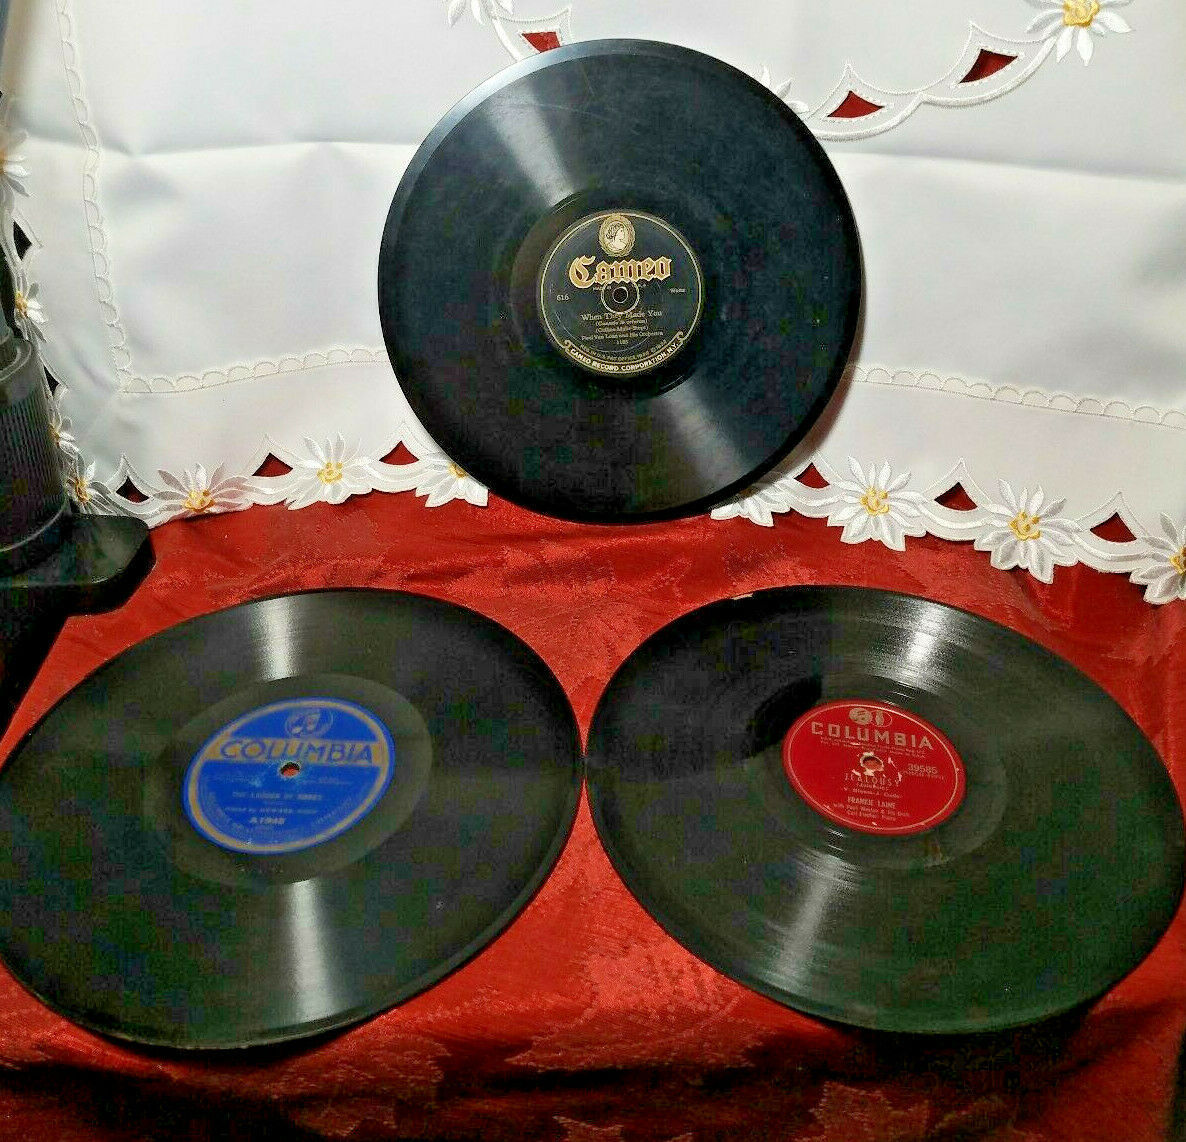 THREE 78 RPM DISC RECORDS 2-COLUMBIA 1-CAMEO SEE PHOTOS FOR ARTIST AND SONGS